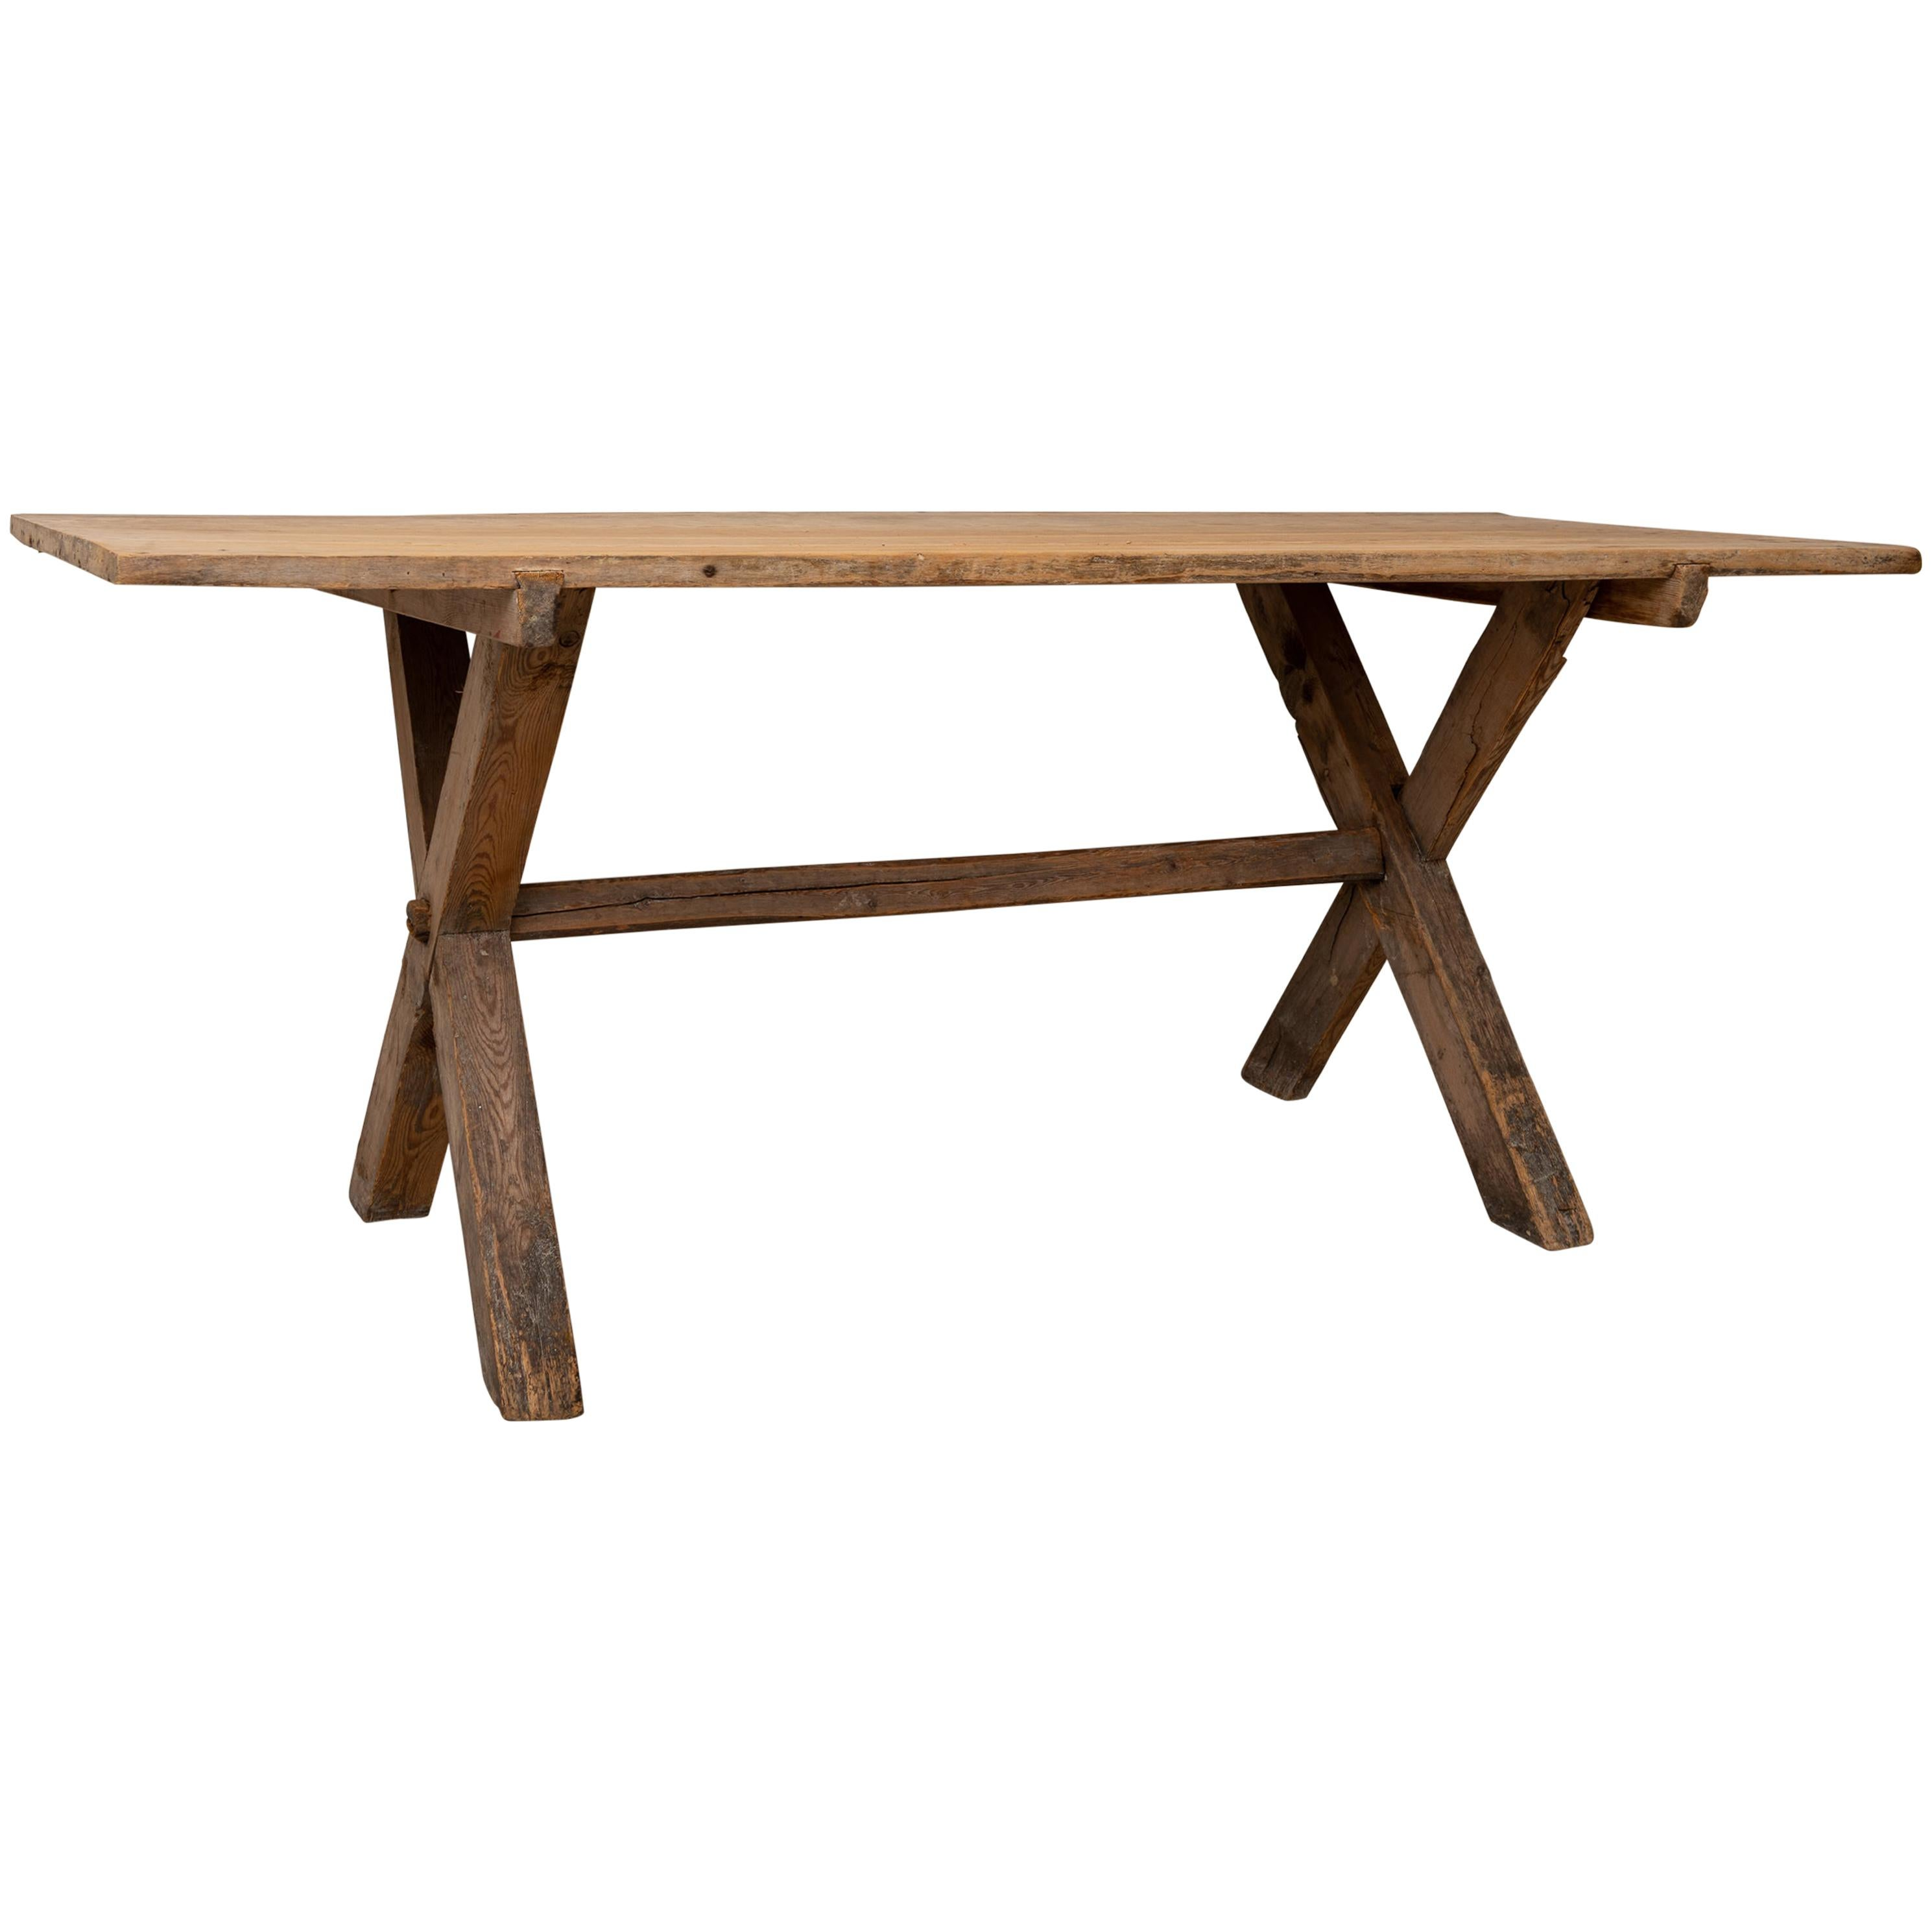 Large 18th Century Swedish Rustic and Primitive Pine Table